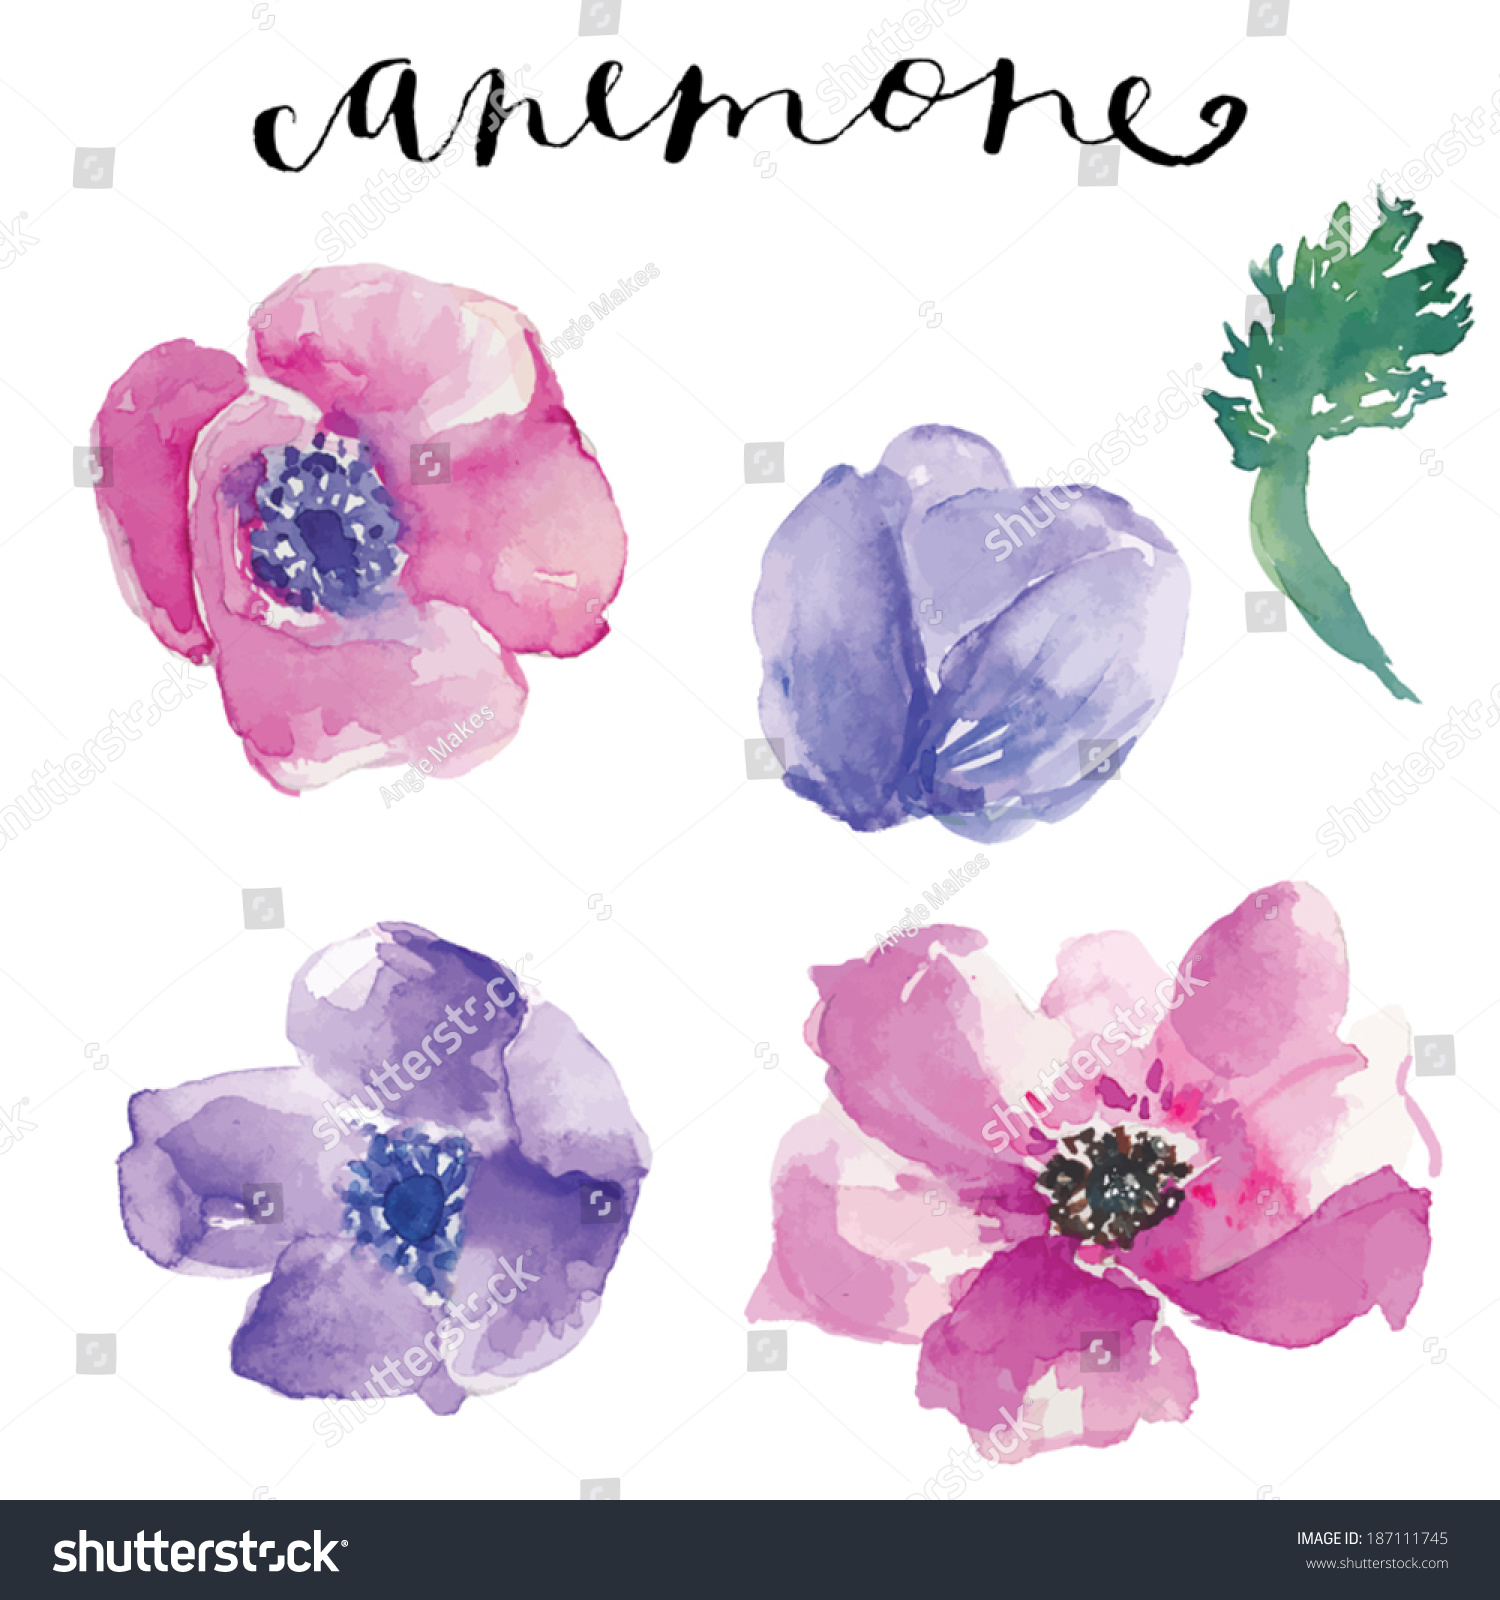 Watercolor Vector Flowers Watercolor Anemone Flowers Stock Vector ...